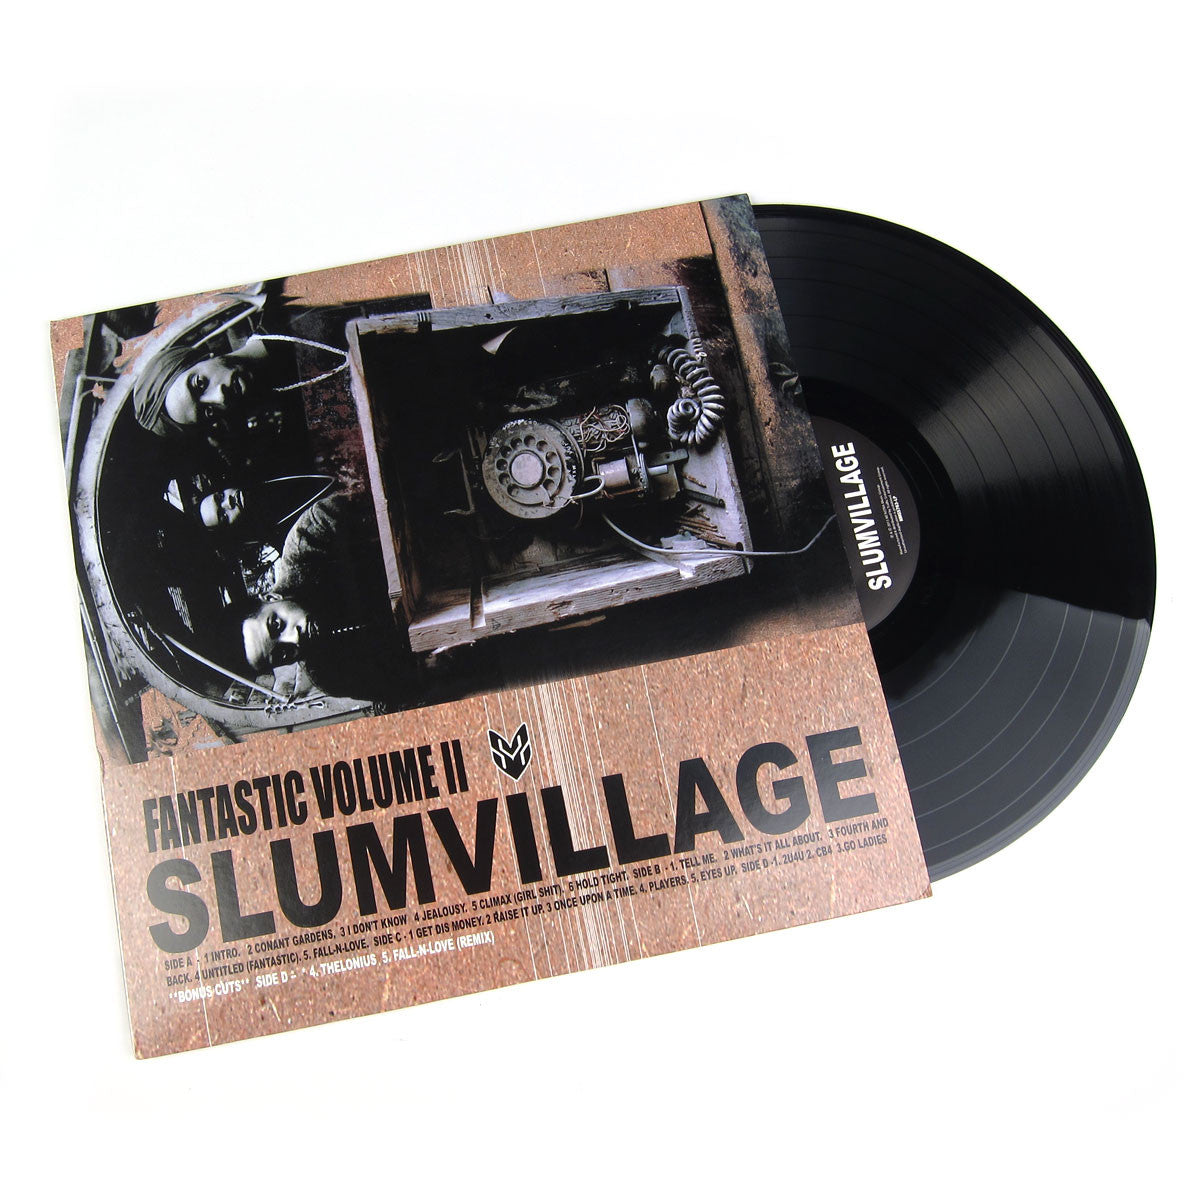 "So much drama surrounded Slum Village's debut album: first they were dropped from Interscope, then Vol. 2 was released as a Euro import/boot, then they were picked up by Goodvibe, which put it out officially but later folded. The music was no less controversial - Swizz Beats keyboards were the rule and heads weren't ready for the loose, soulful beats and lazy rhyme styles. Jay Dee is an undeniably brilliant producer, and heat rises - Fantastic Vol. 2 is now widely regarded as a cornerstone of the Soulquarian sound. Okay, I'll admit Muhammed Baatin and T3 aren't my favorite rappers, but they do have a certain unique charm and they're pretty clever writers. And with a good range of styles and collabos with Pete Rock, Jazzy Jeff, Q Tip, D'Angelo, Busta and Kurupt the LP stays fresh to the end. ""Players"" is the catchy sleeper hit, with its beautifully layered singing melody, claps and subdued rhymes. On ""Hold Tight"" Q Tip says ""This is the last time you'll hear me ... I'ma leave it in the hands of the Slum now."" If only it were so. ""Tell Me"" features keyboards and singing by D'Angelo to get the panties wet. ""I Don't Know"" incorporates James Brown adlibs all through the verses and scratches by Jazzy Jeff. Pete Rock helps out with beats, verses and scratches on ""Once Upon a Time."" With 15 more tracks including ""Fall in Love"" and ""Raise it Up."" Double vinyl version with pic sleeve.  music label: Wordplay Records 2000 / Ne'Astra Music Group 2015 reviewed by ayres 08/2005"